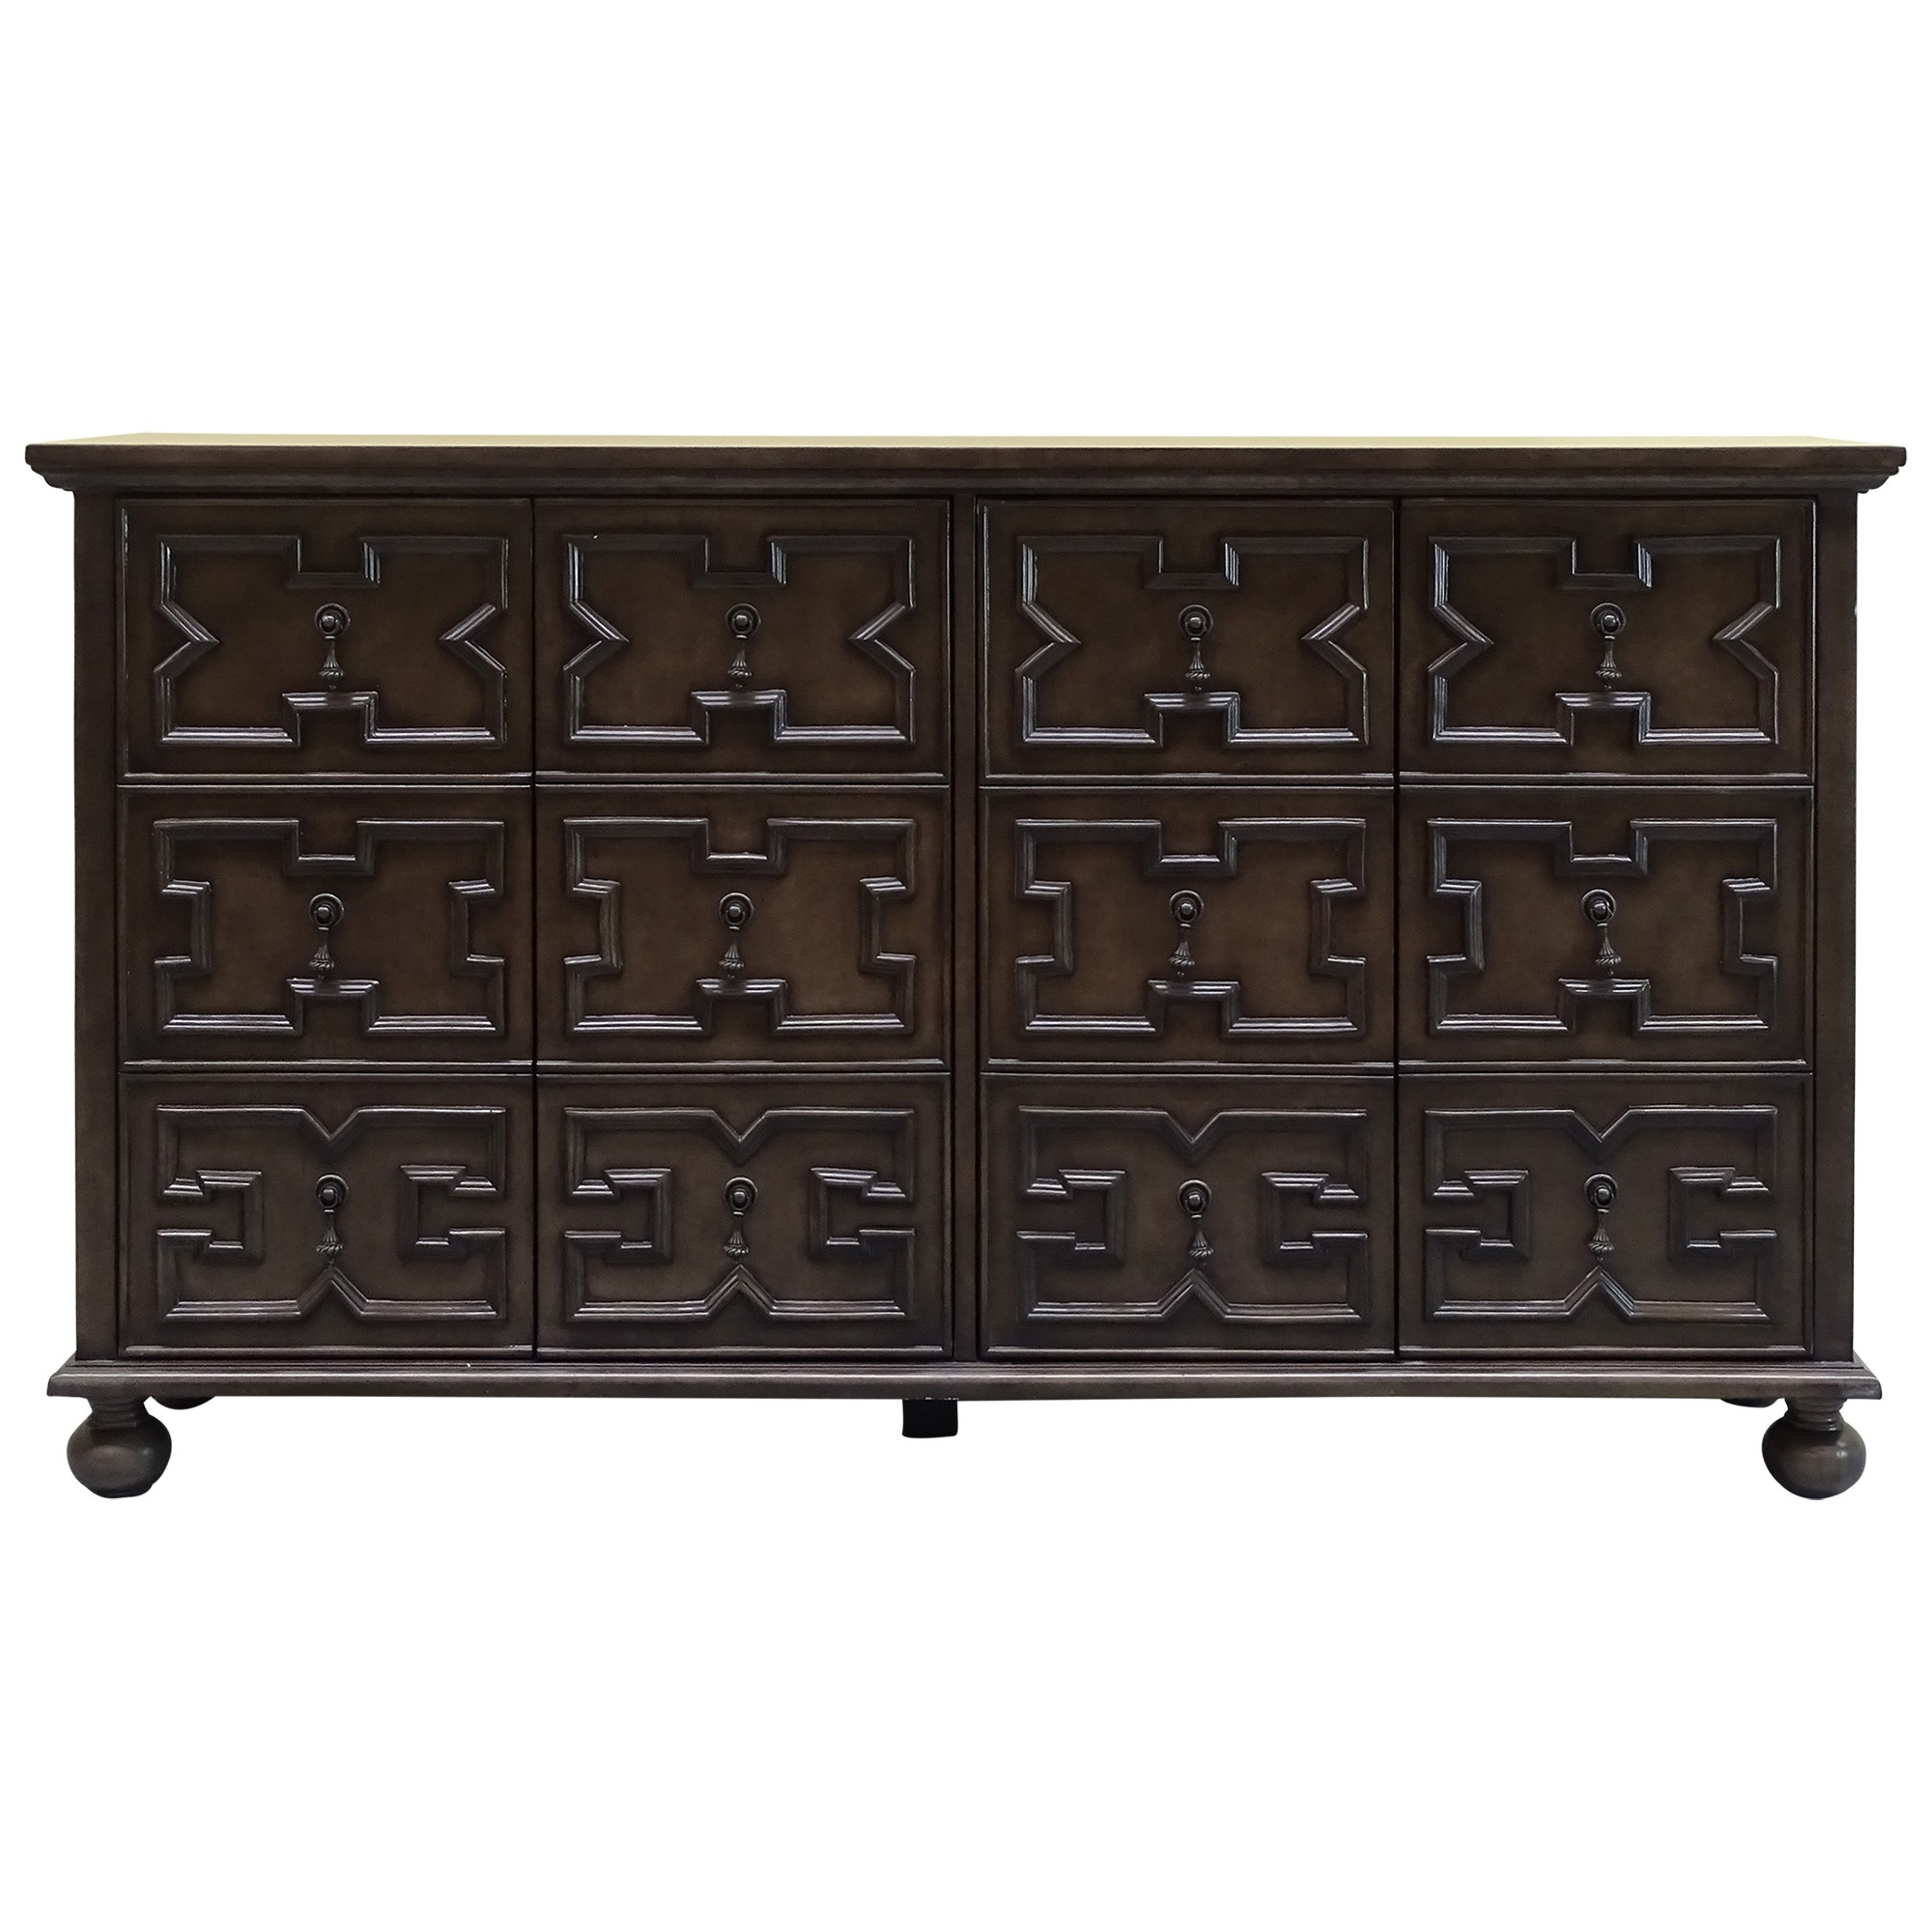 Oscar 4 Door Buffet Table, 158cm